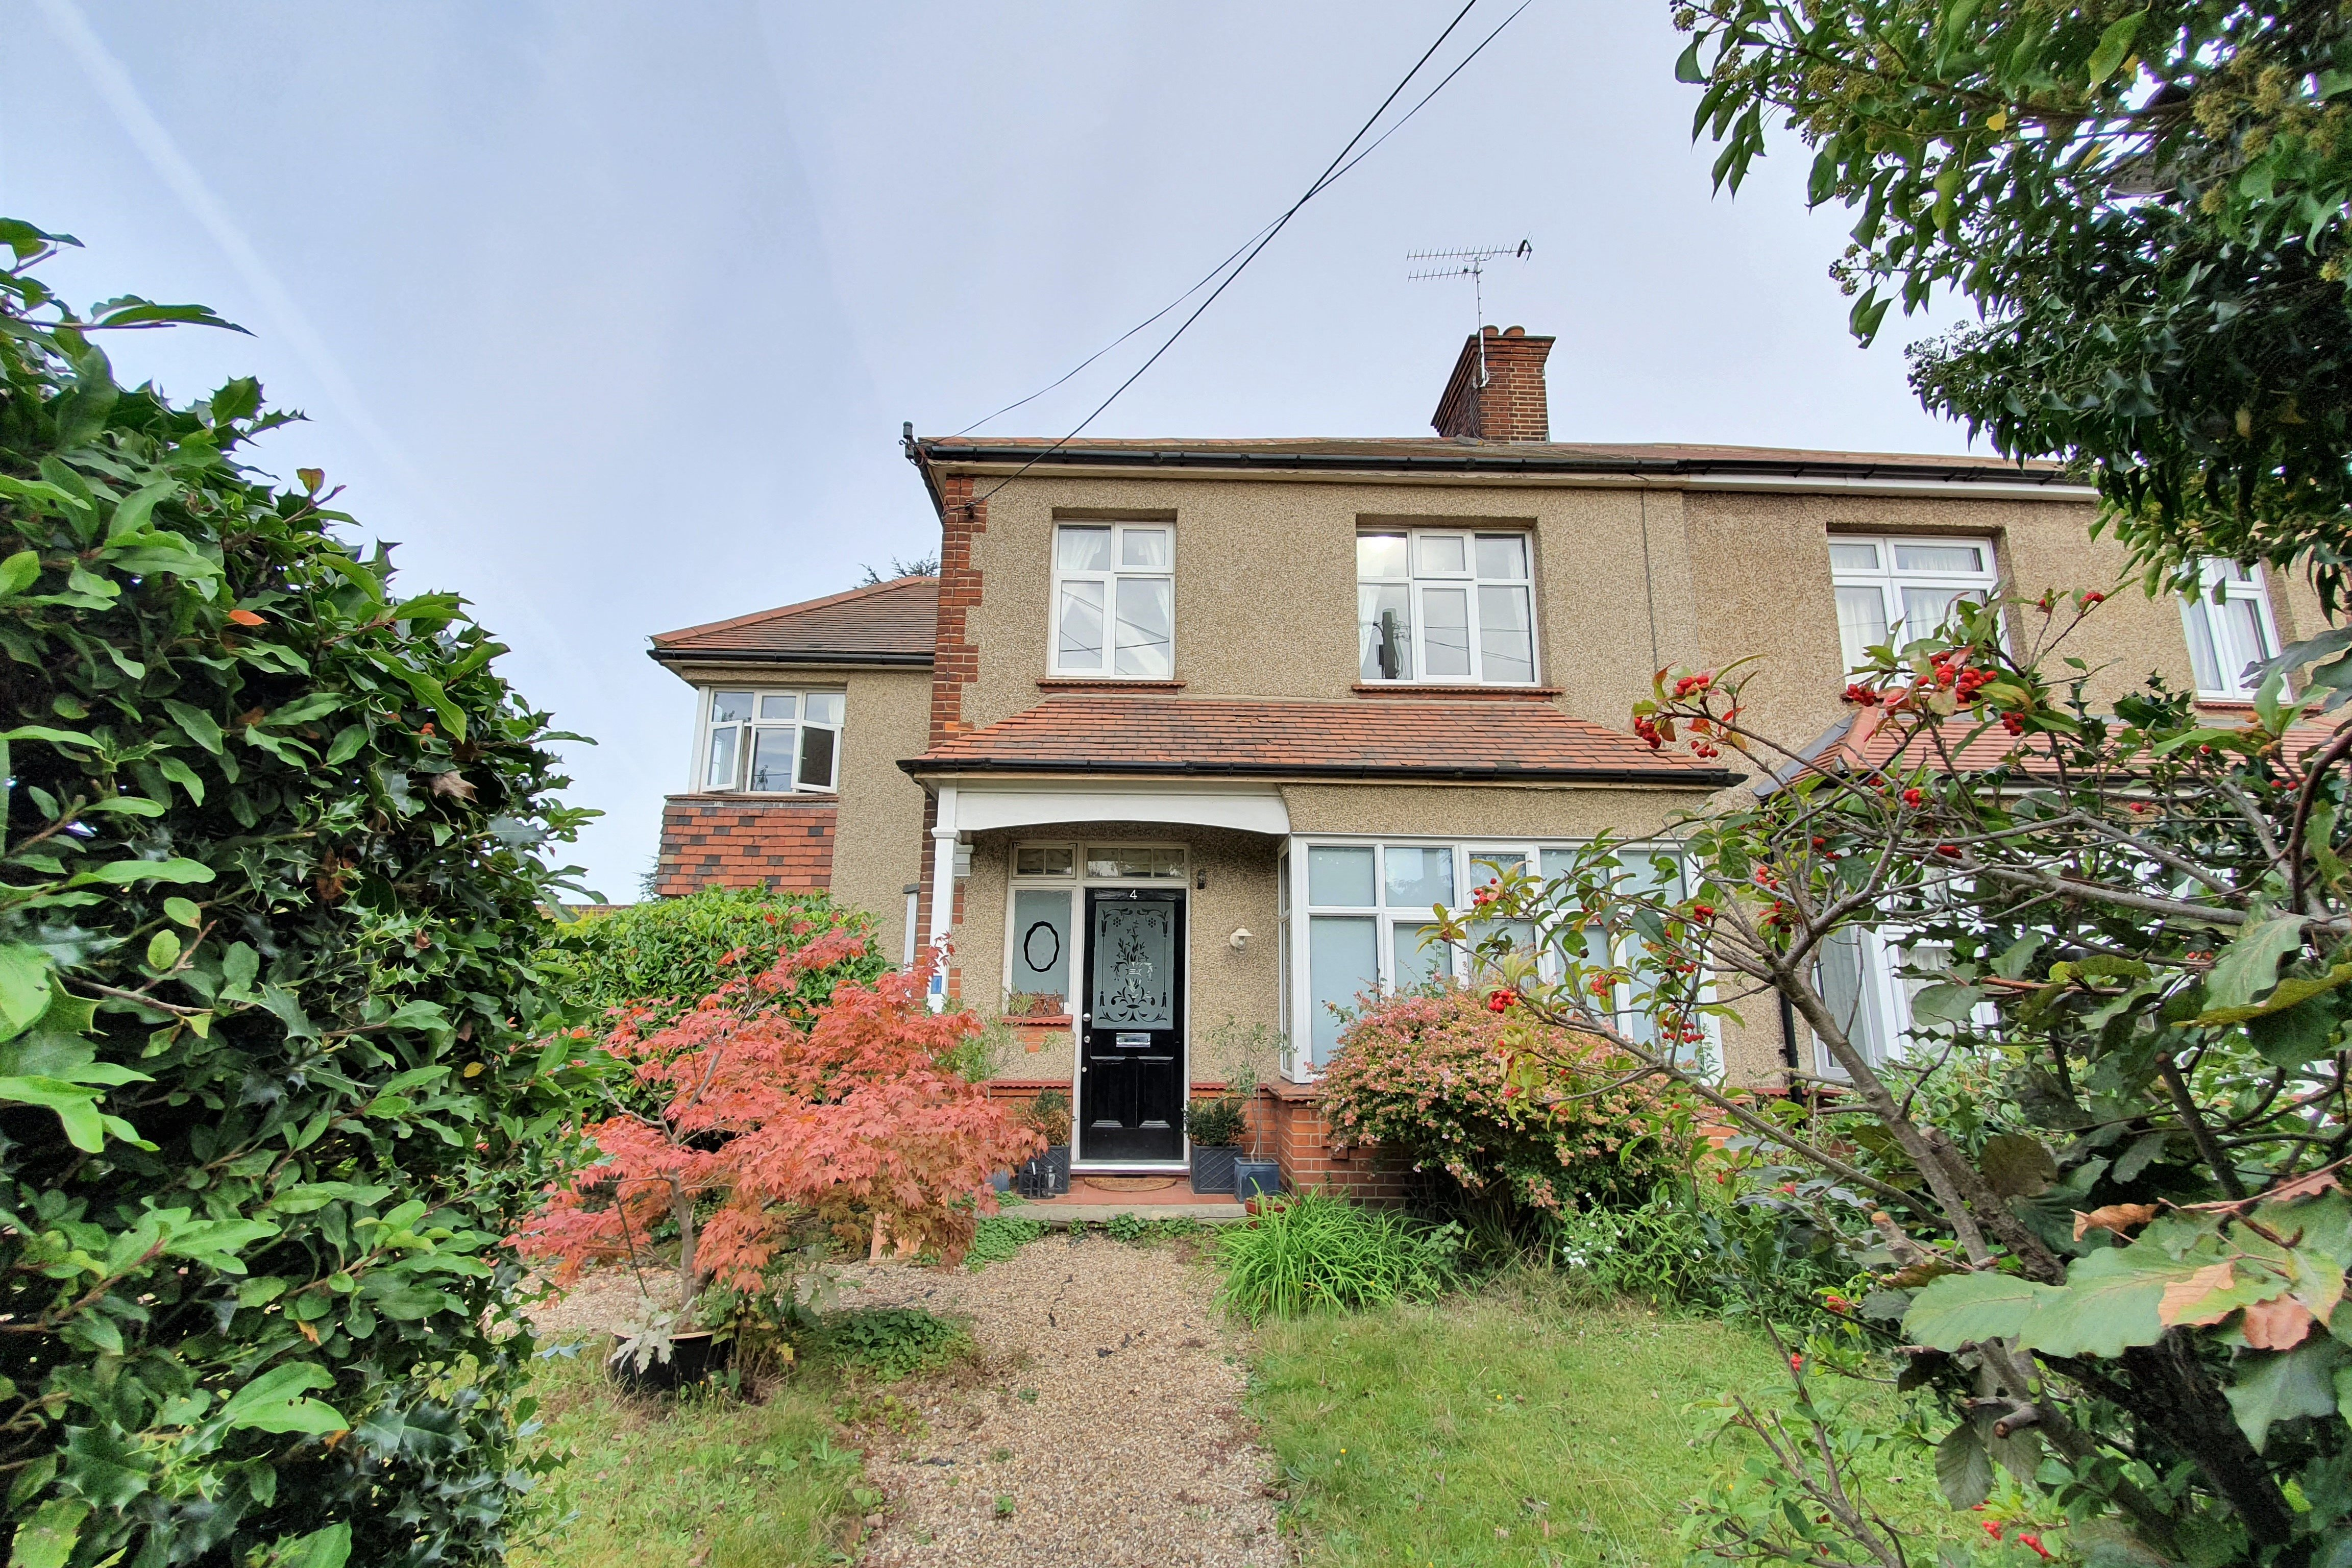 1 bed house / flat share to rent, Rayleigh  - Property Image 1